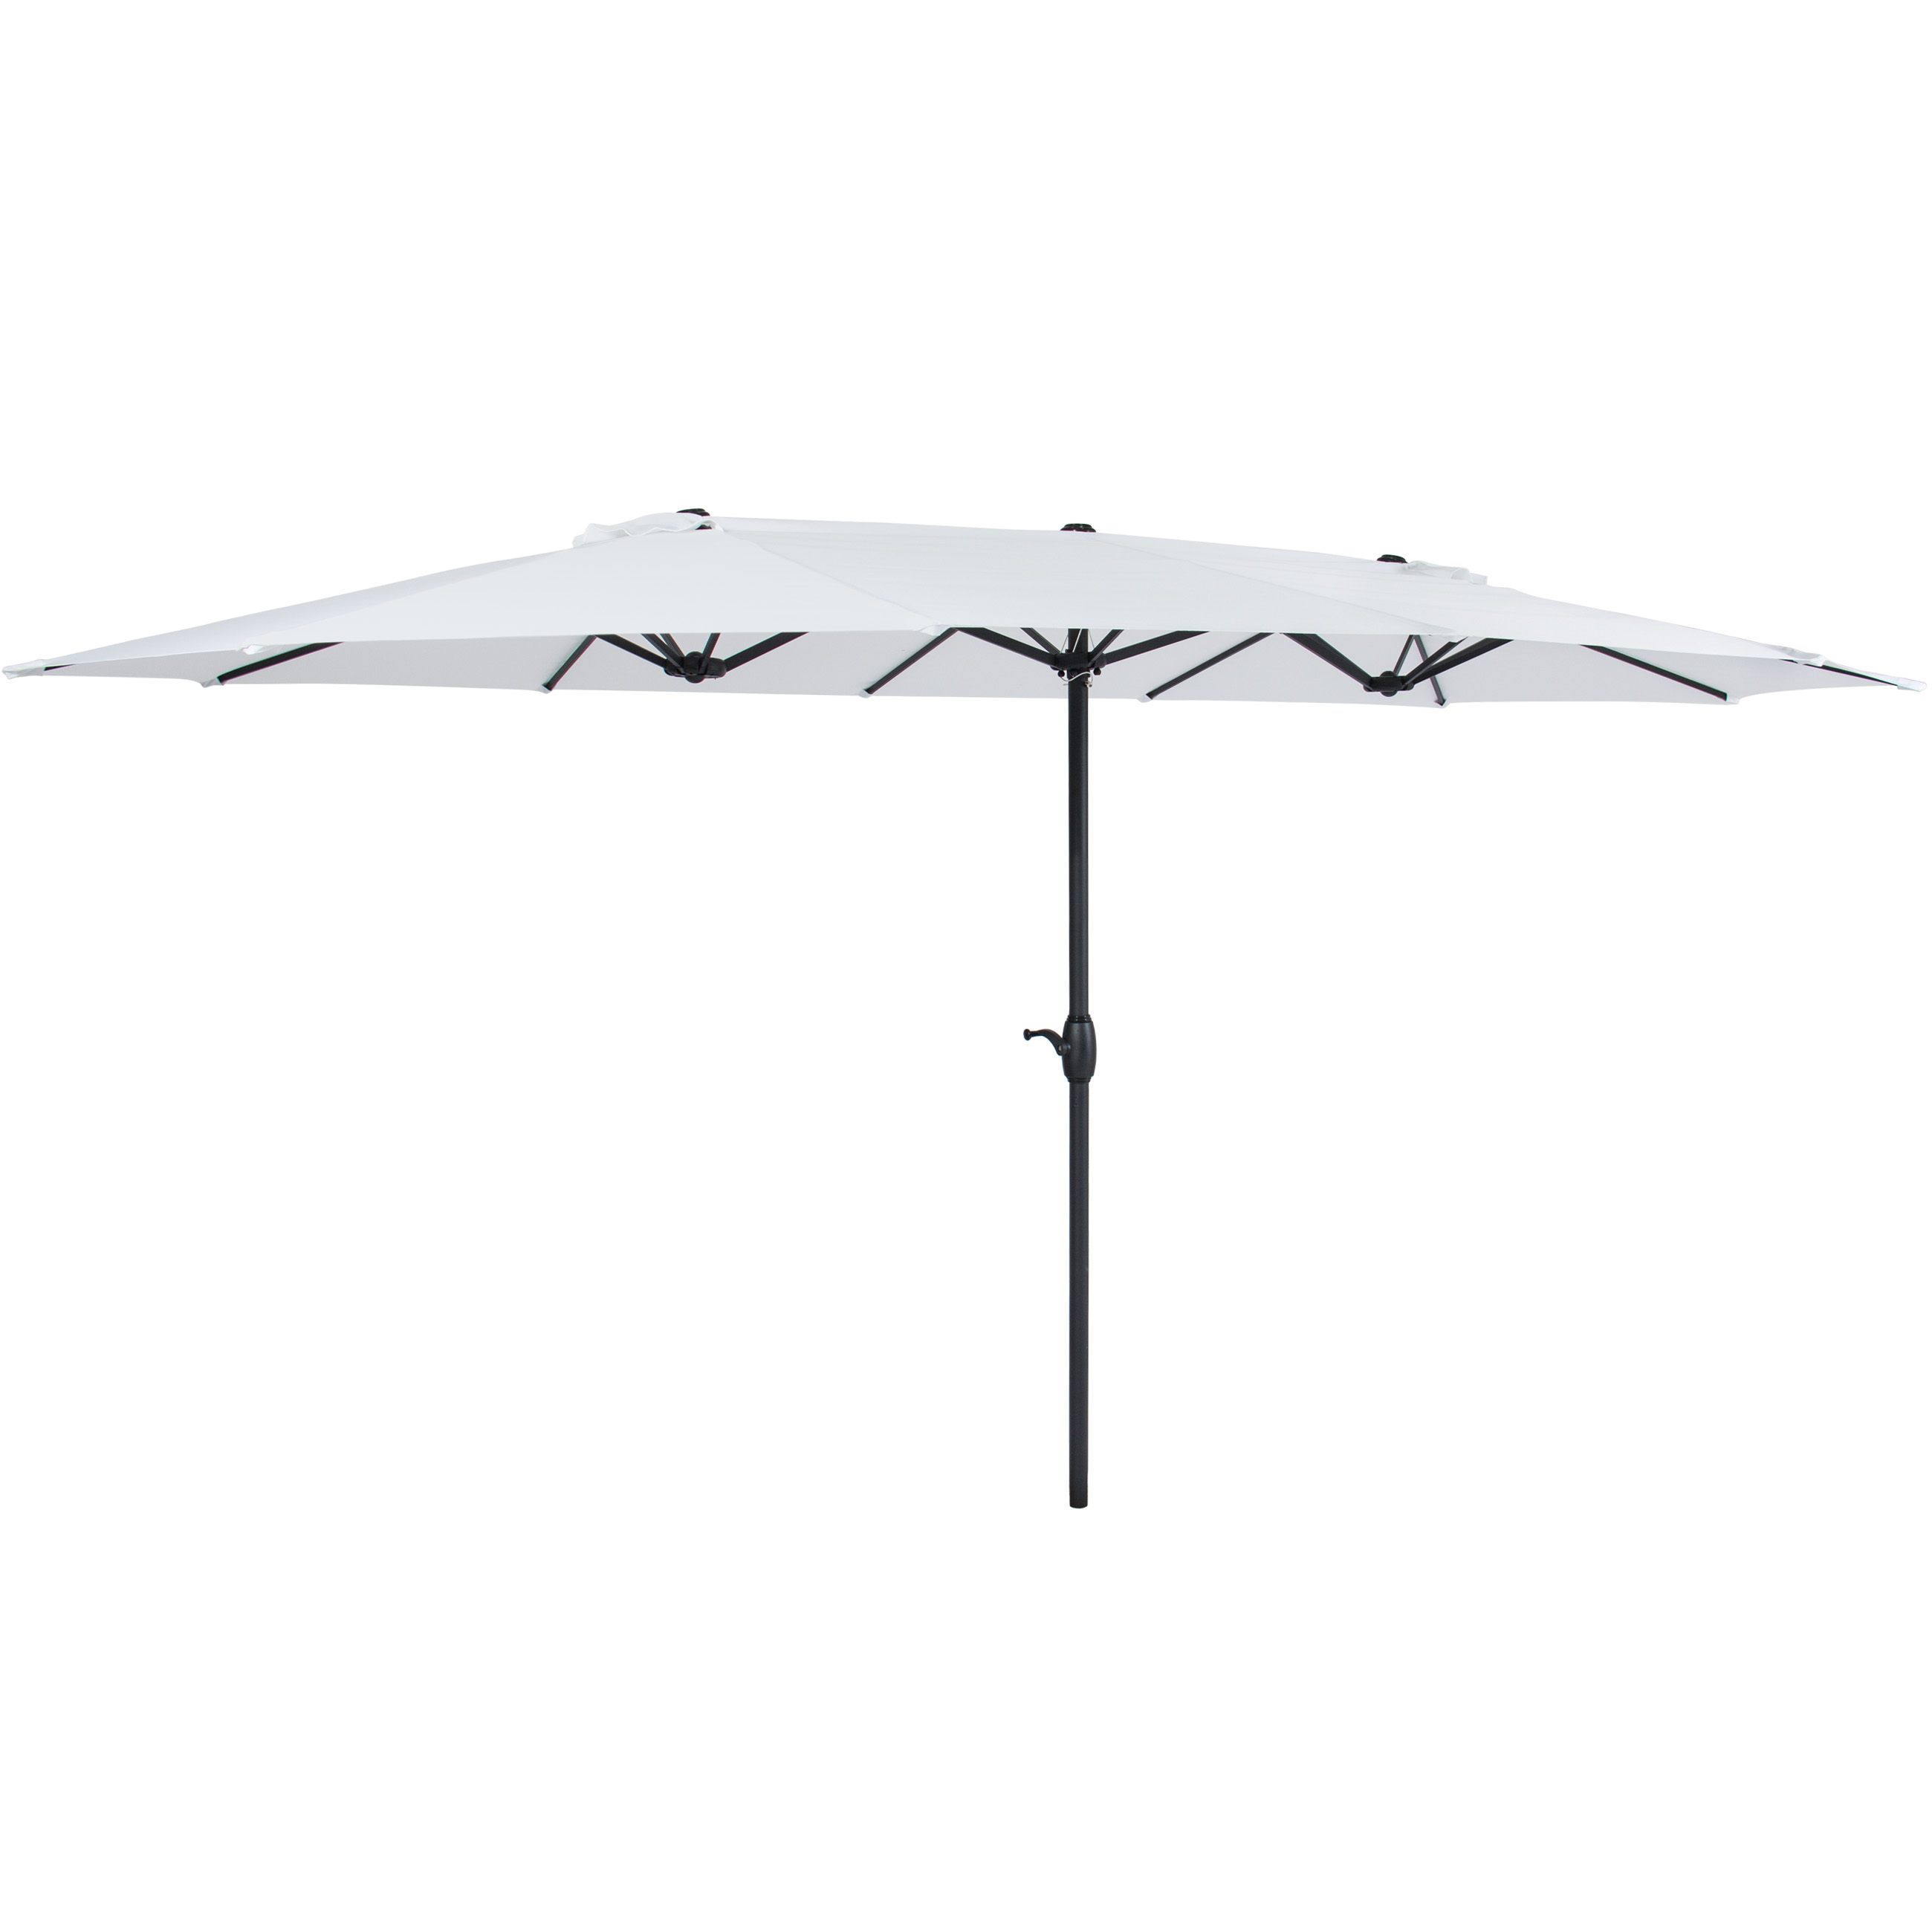 Product Image Best Choice Products 15x9ft Large Rectangular Outdoor  Aluminum Twin Patio Market Umbrella W/ Crank,